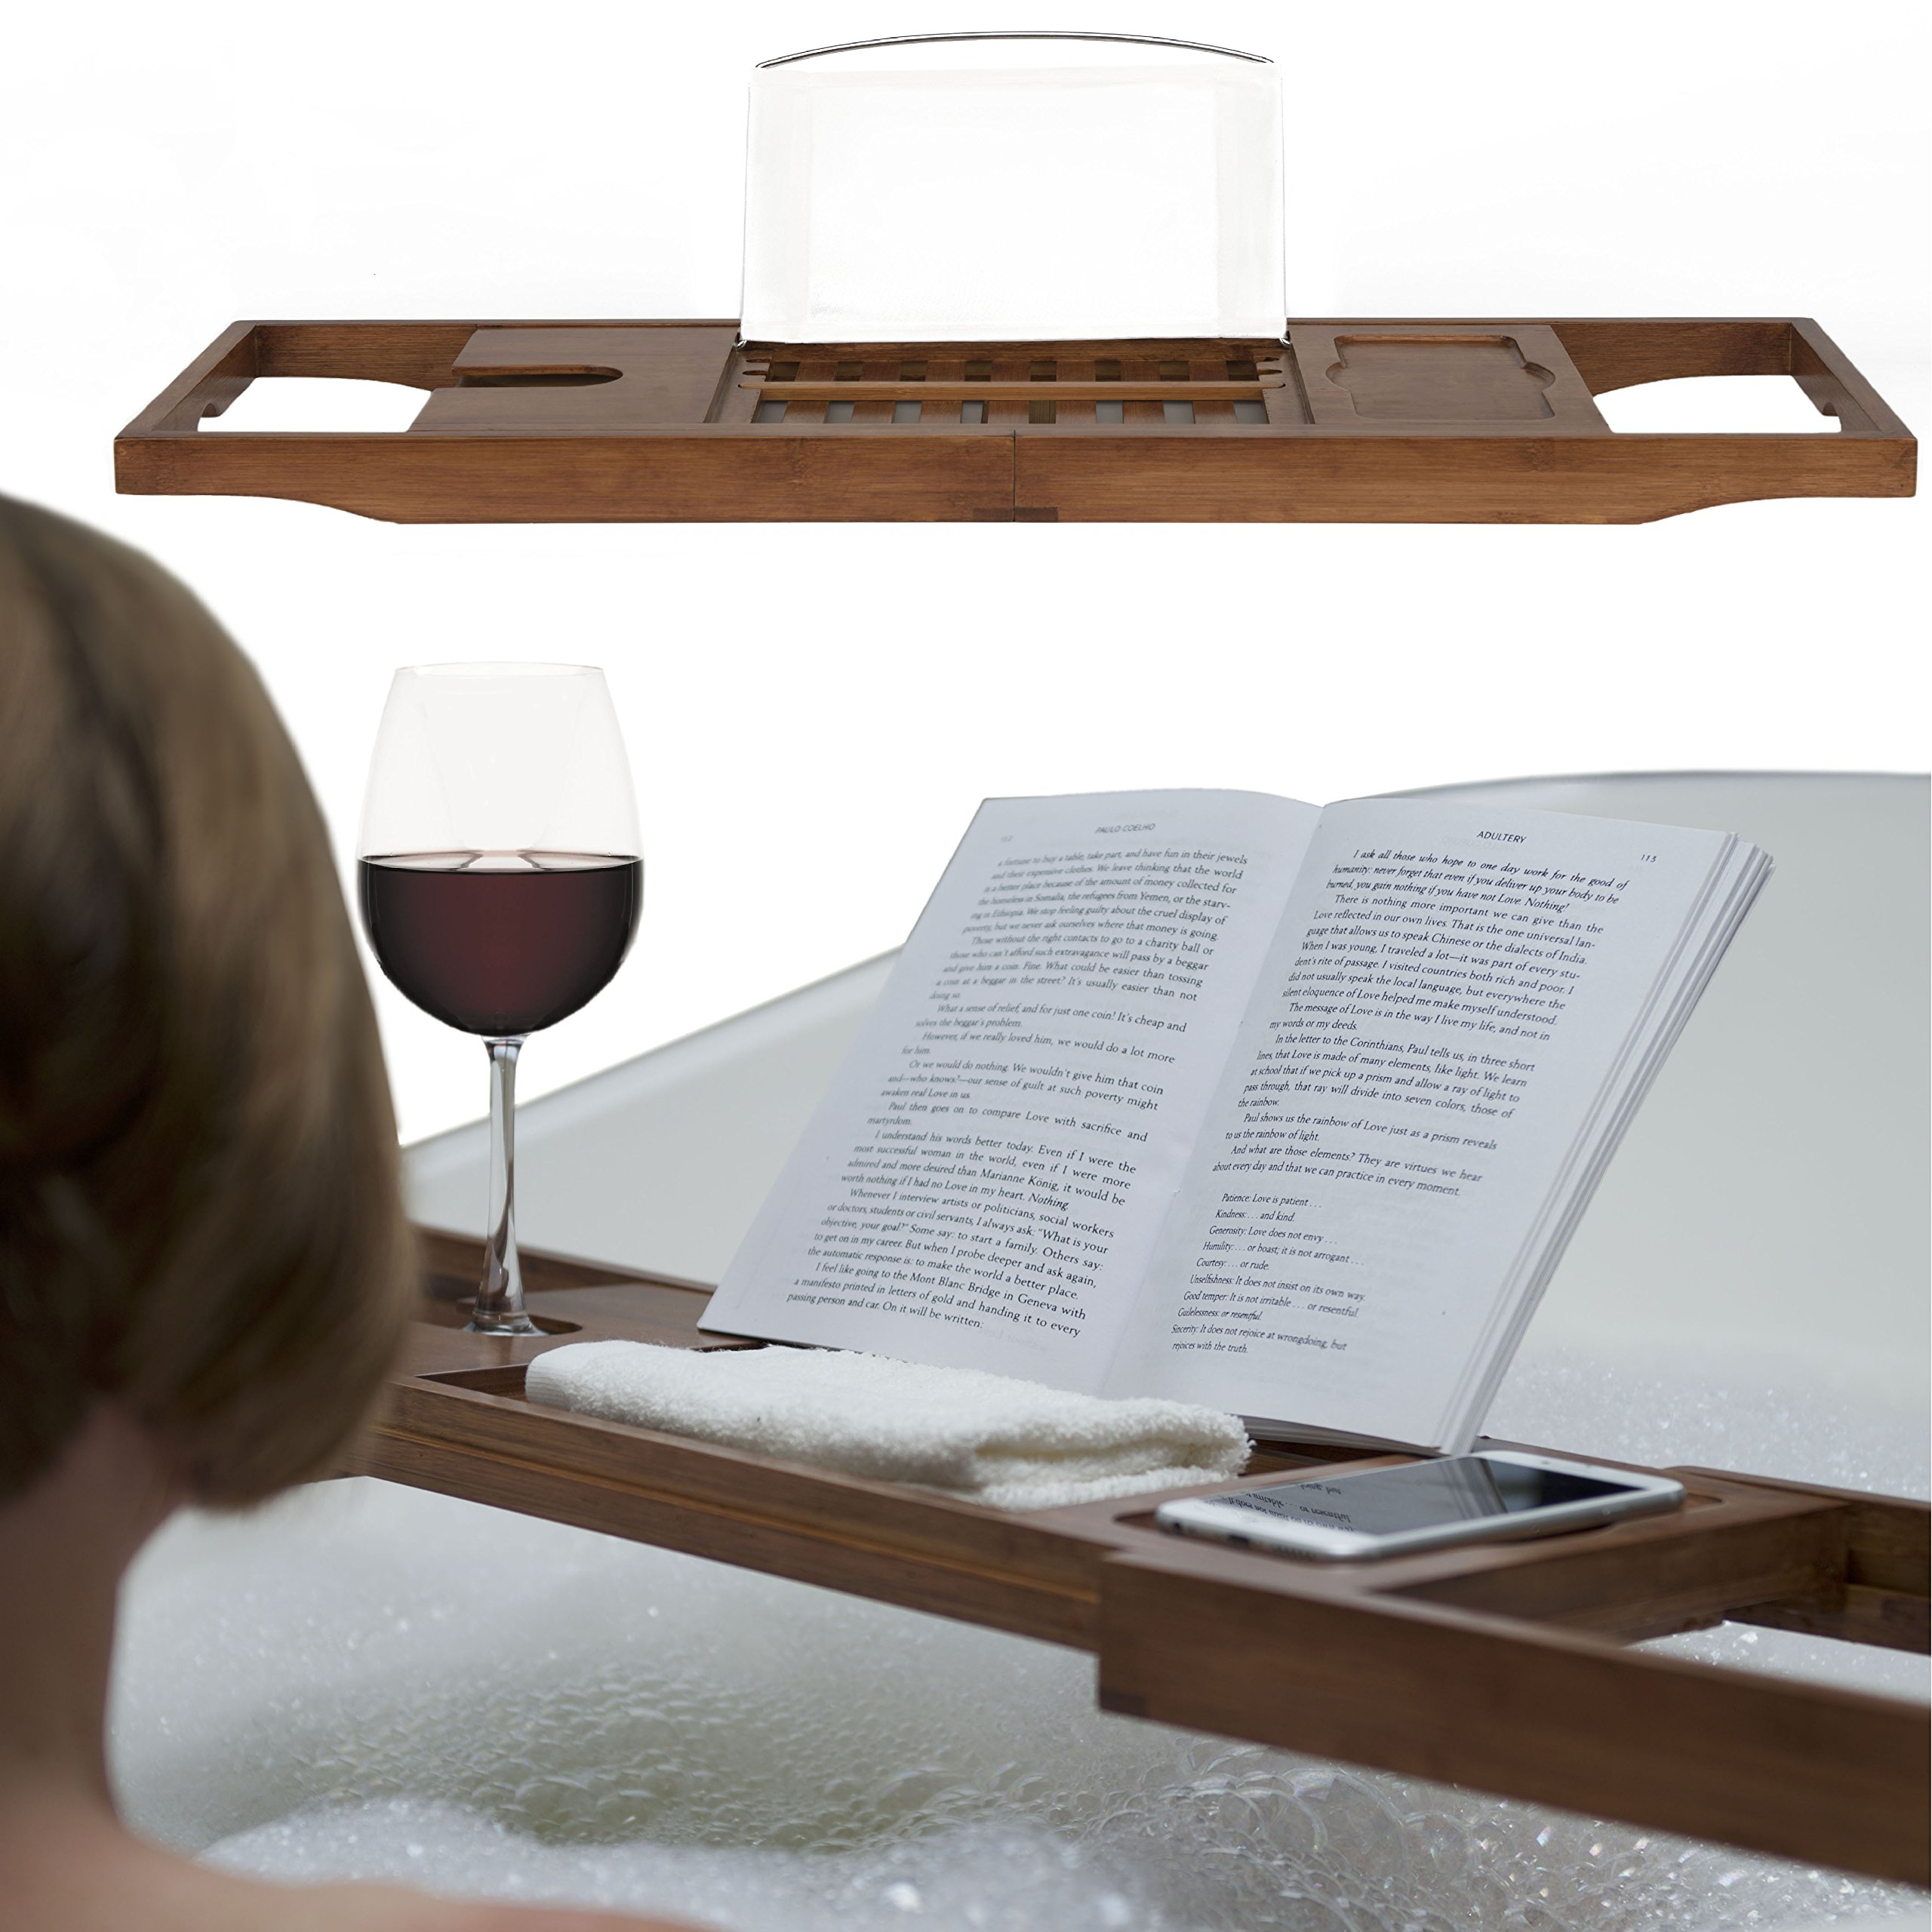 Luxury Dark Walnut Brown Bathtub Caddy, Natural Premium Bamboo Bath Tub Tray with Extending Sides, Reading Rack, Wine Glass, Book and Tablet Holder by Eden Bath (Image #7)